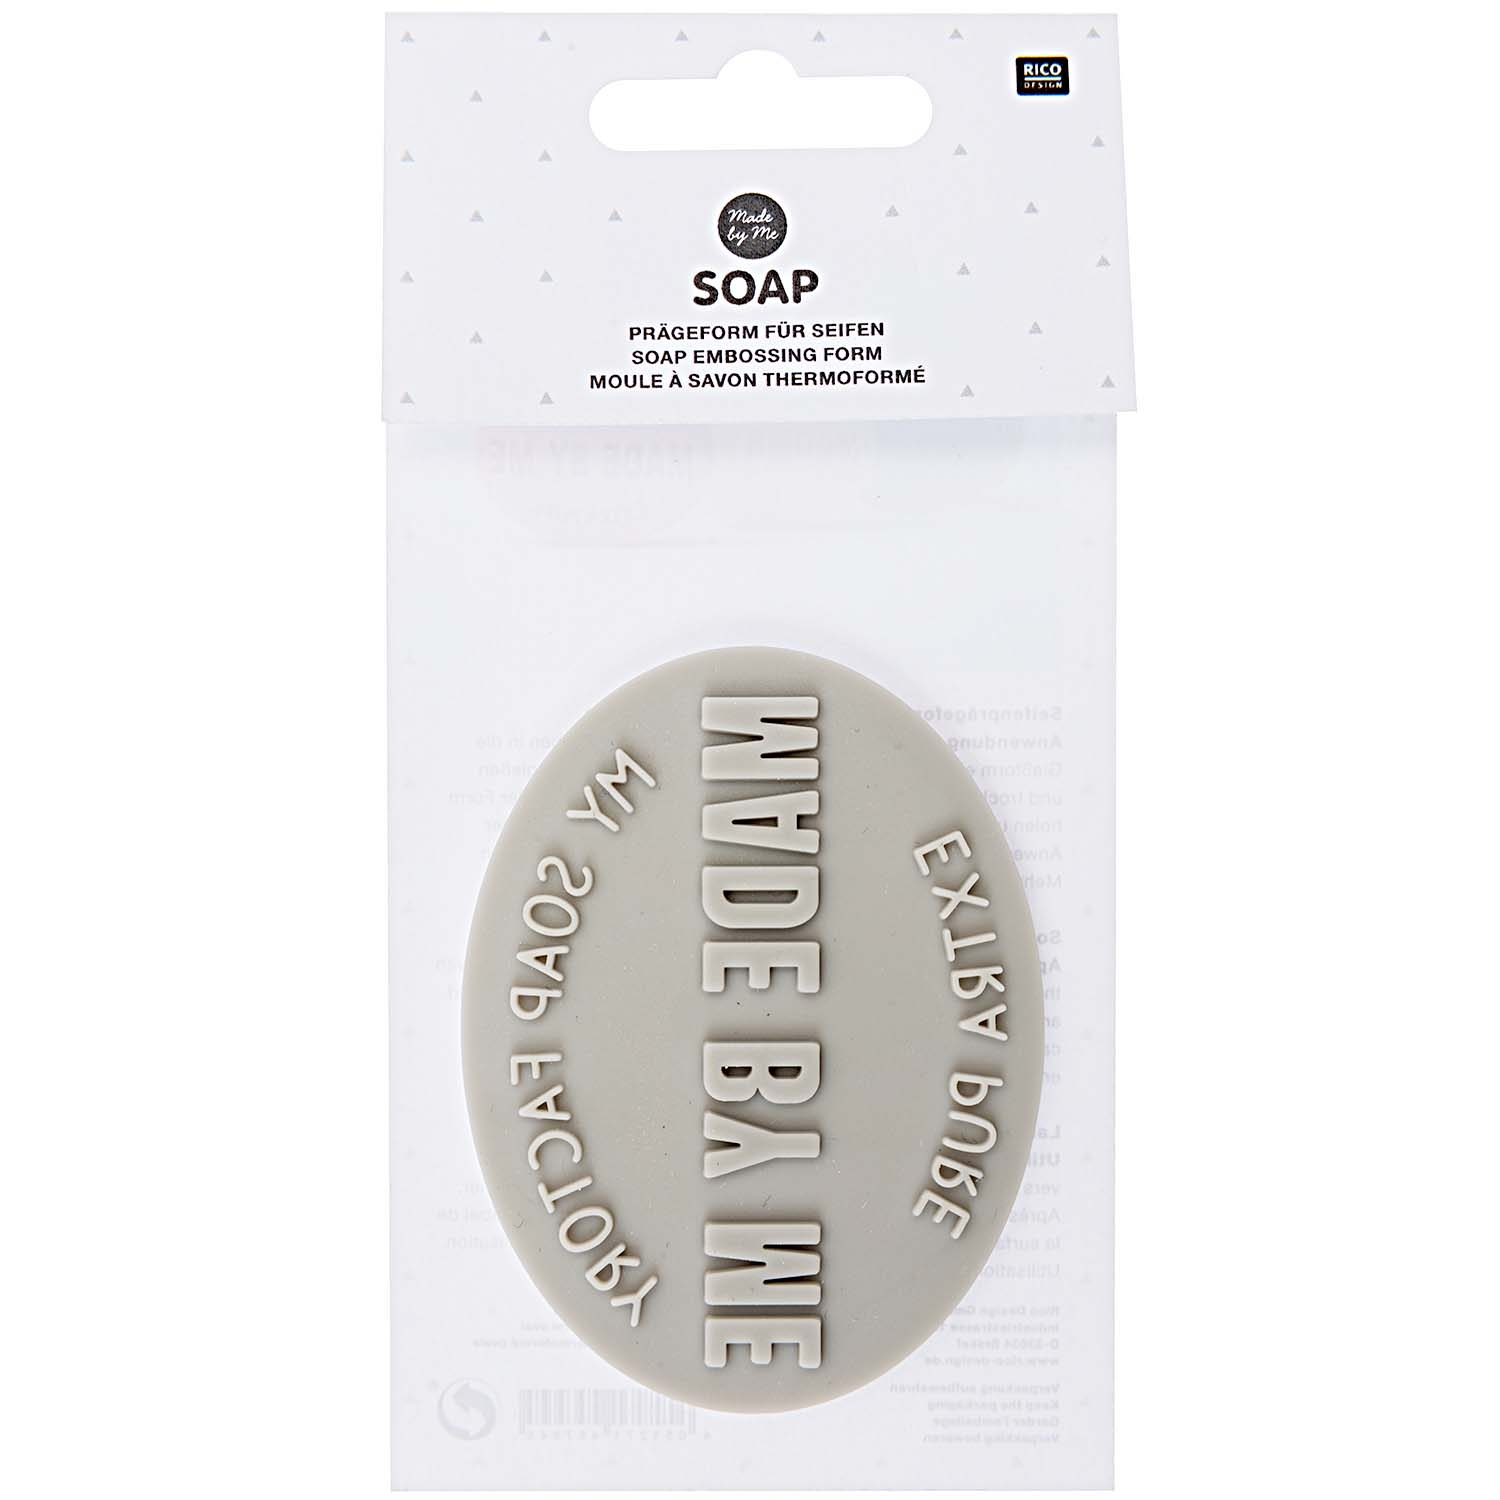 Soap Embossing Form Oval